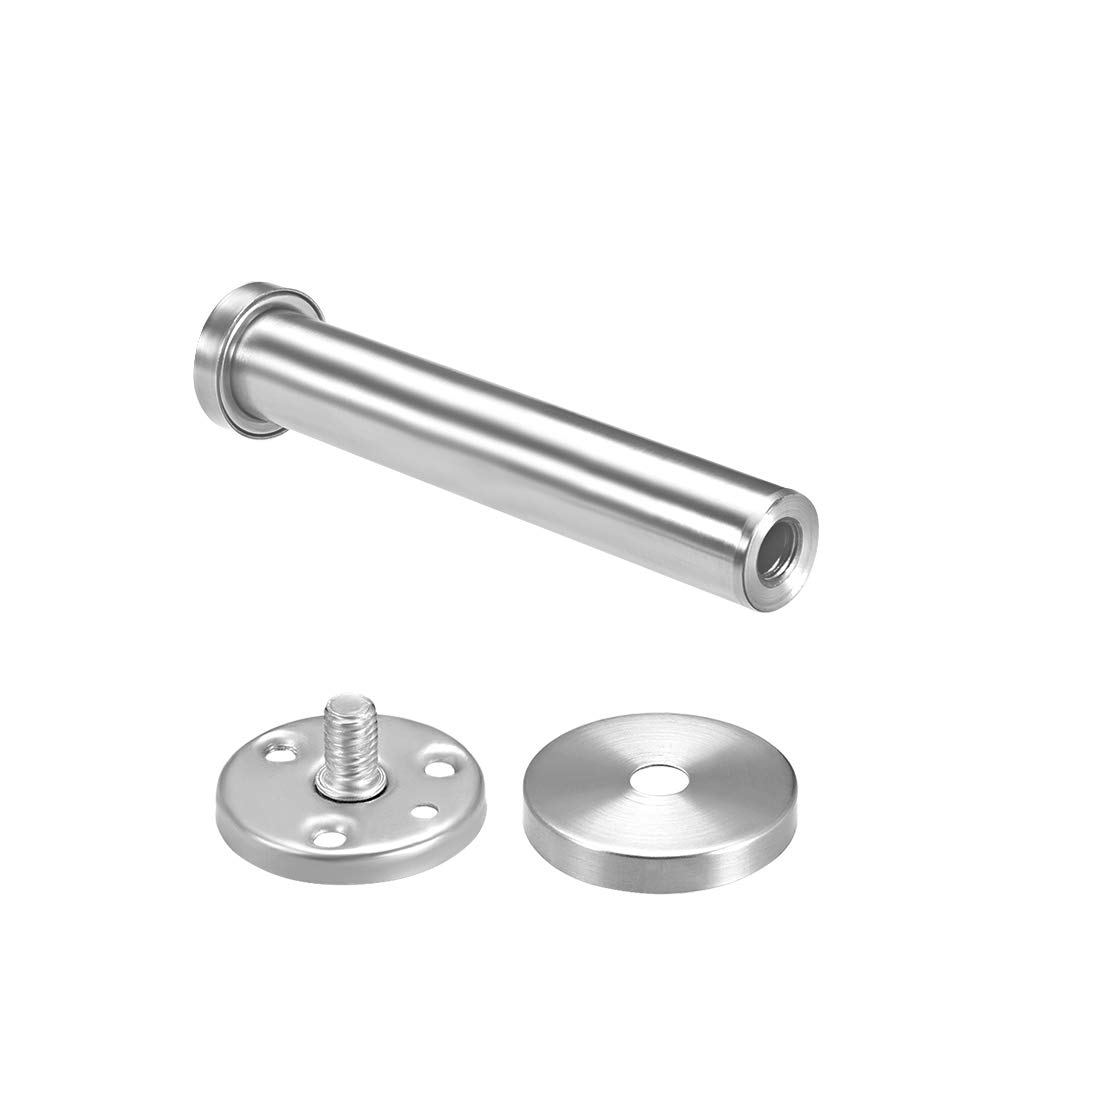 uxcell 2Pcs Wall Mounted Hook Robe Hooks Single Towel Hanger With Screws Stainless Steel, 2.63Inch, Silver